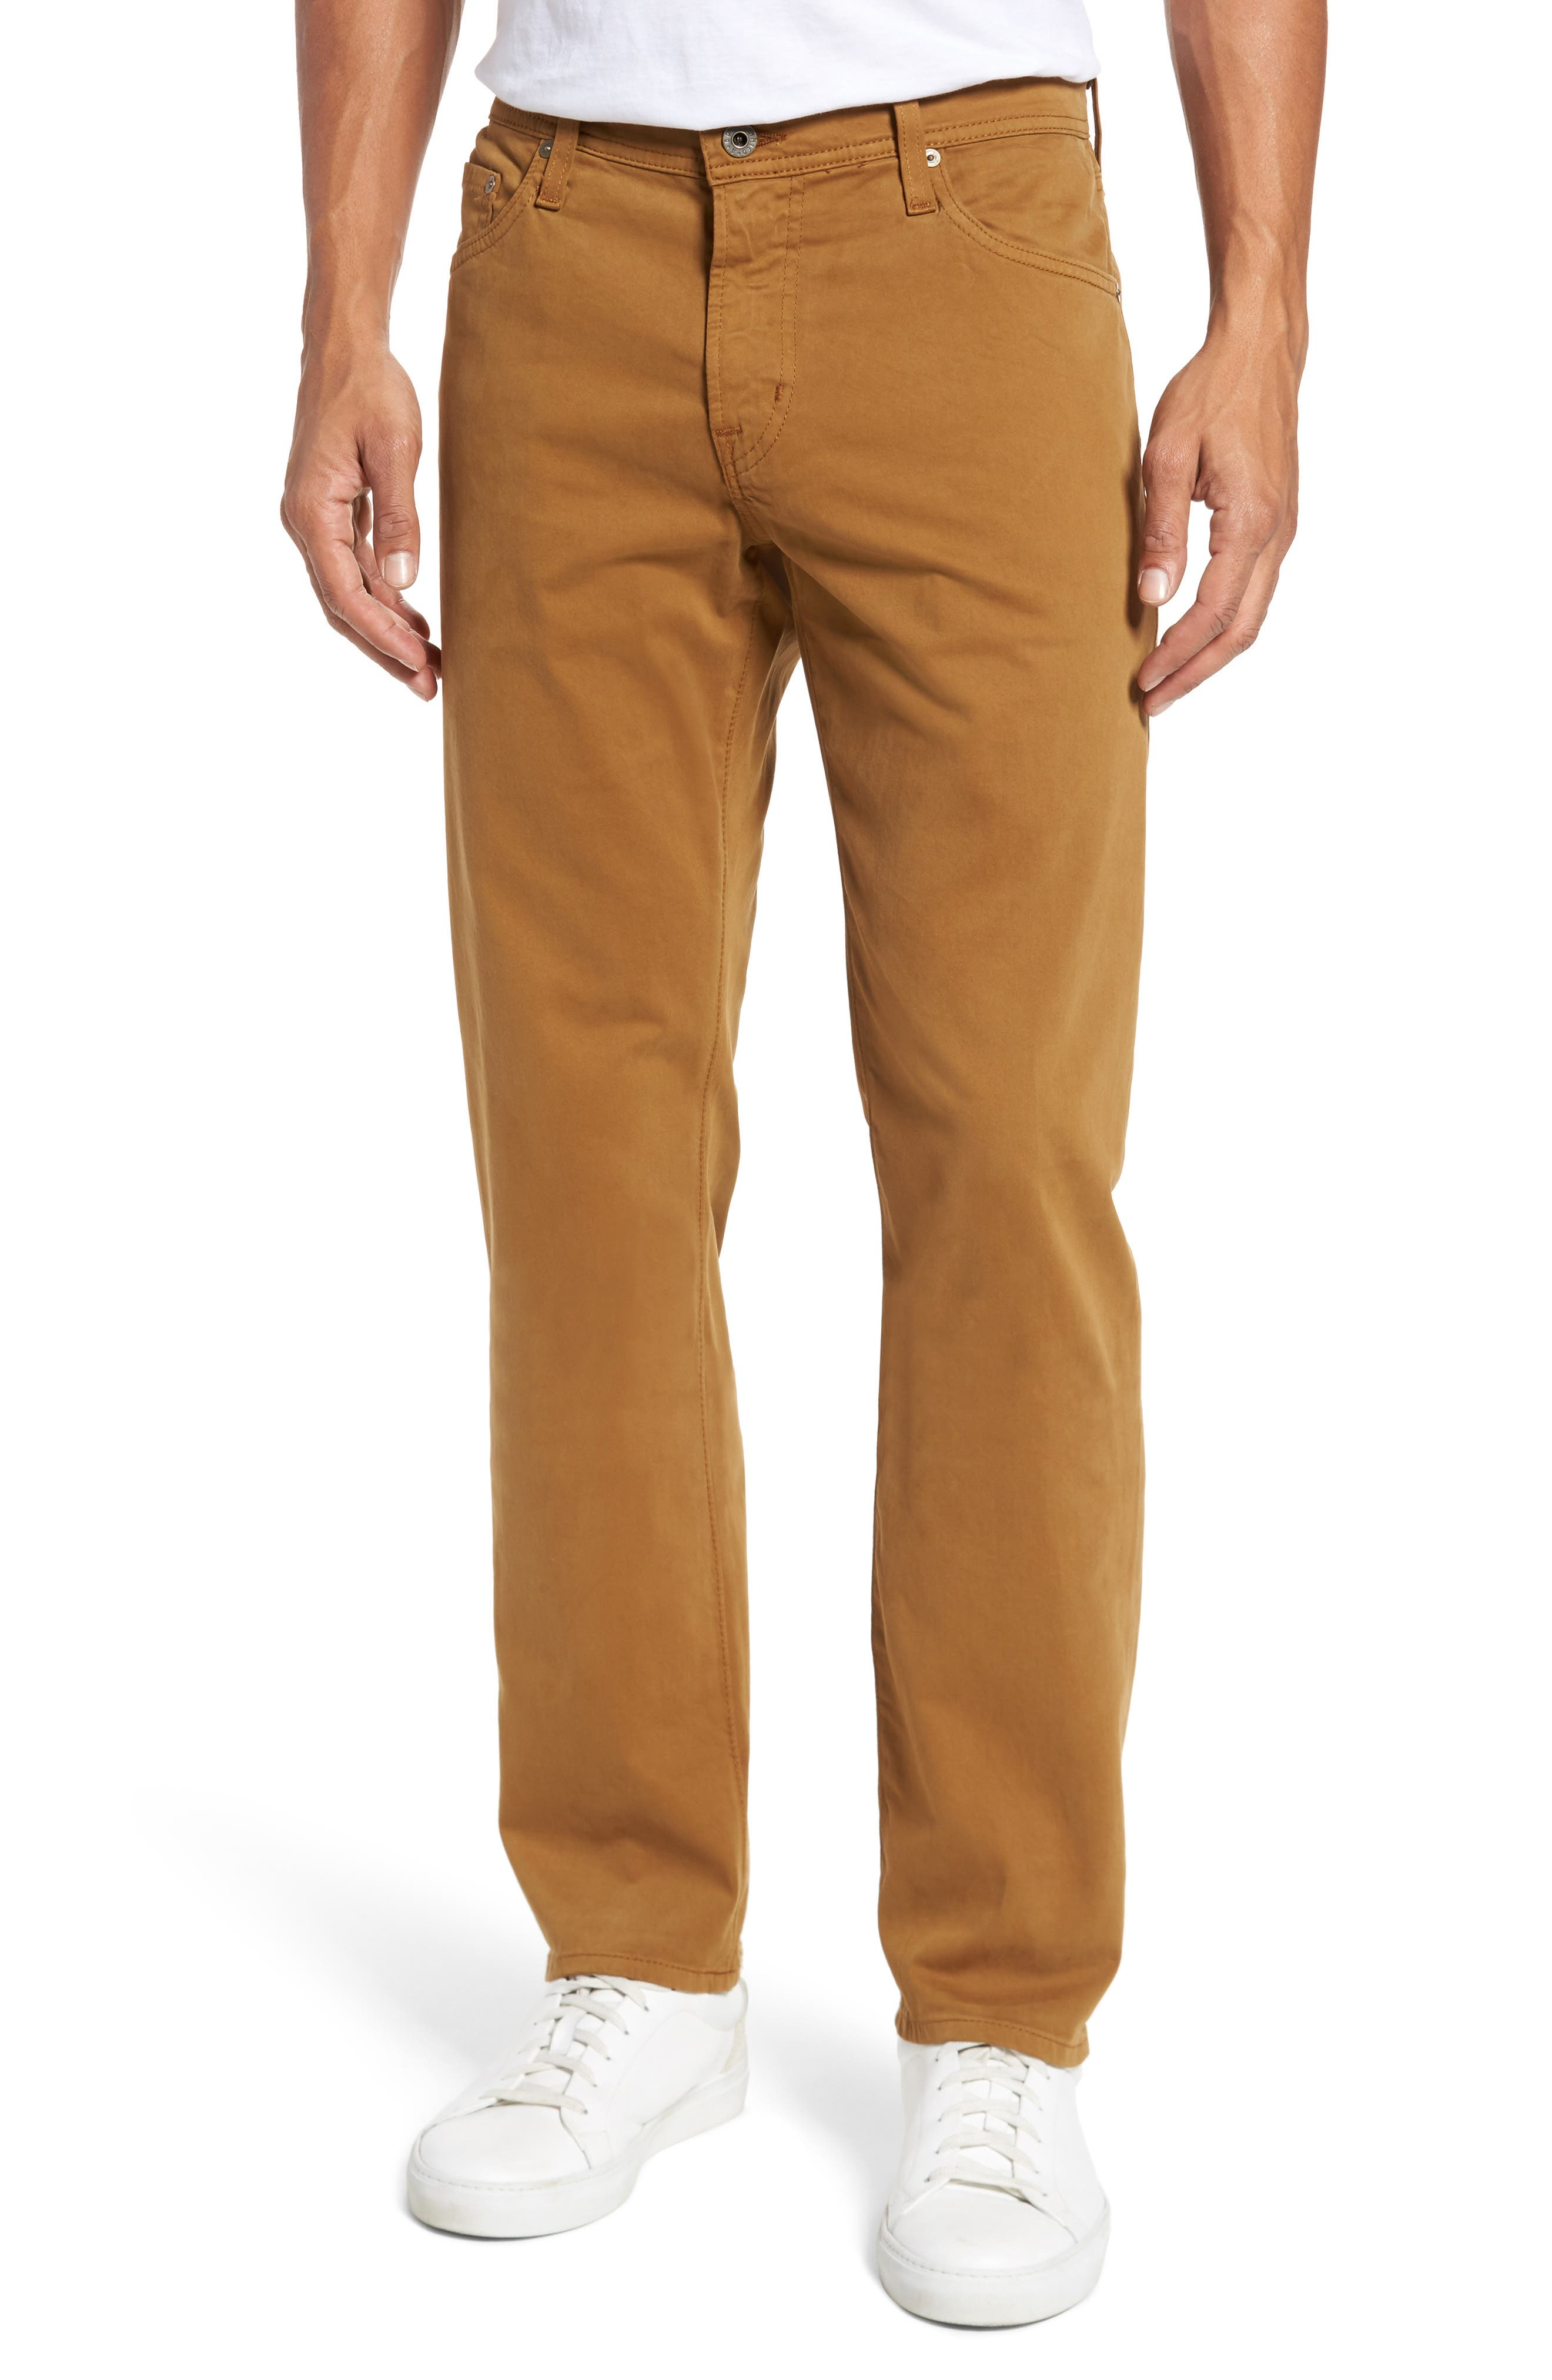 Graduate SUD Slim Straight Leg Pants,                         Main,                         color, Burnt Saffron (Bfn)